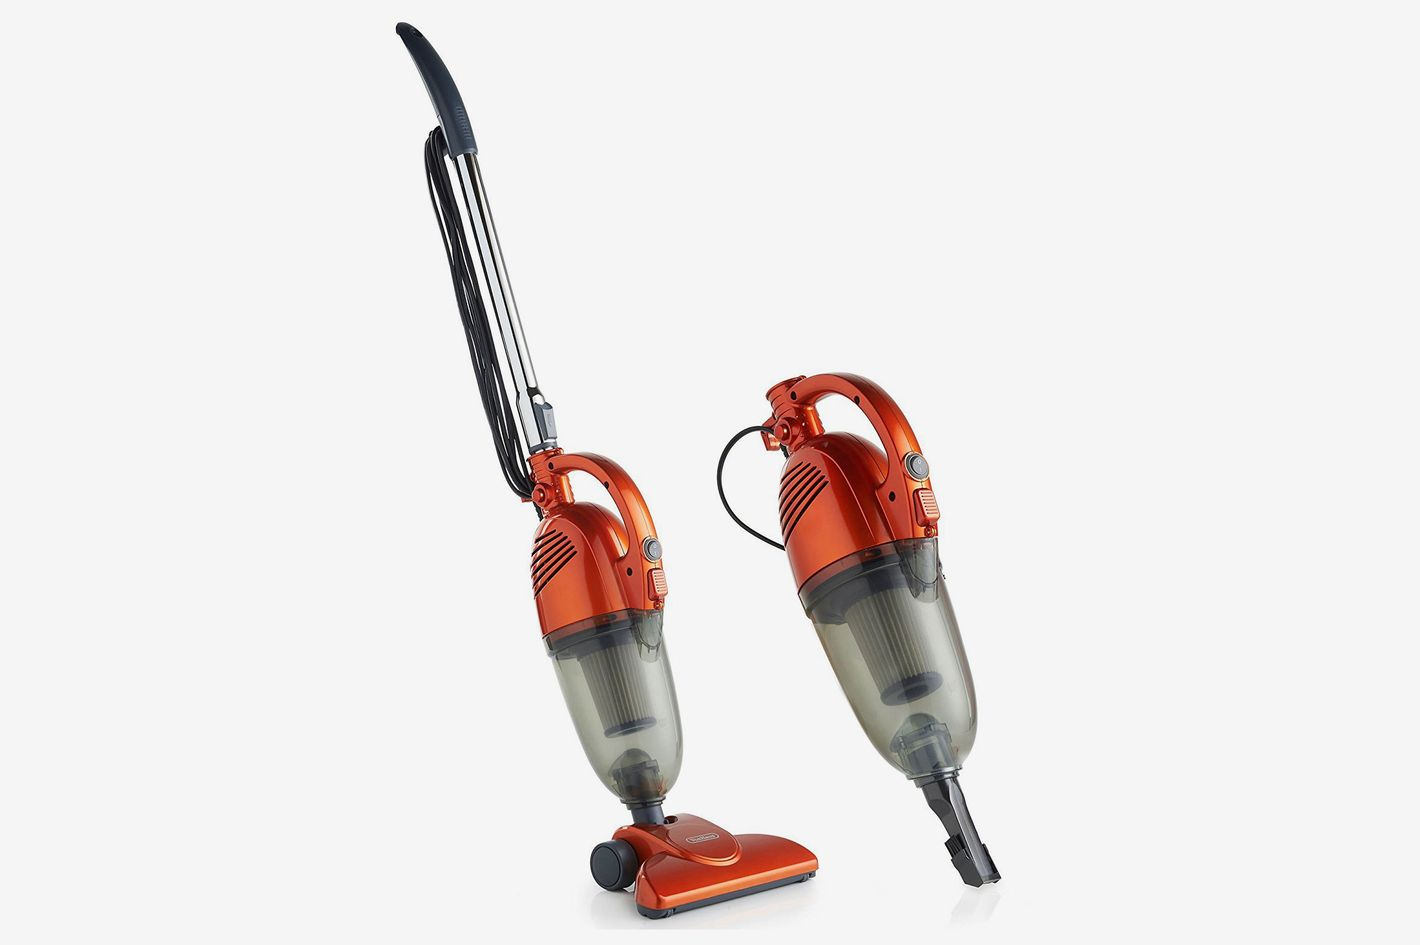 Vonhaus 2 In 1 Corded Lightweight Stick Vacuum Cleaner And Handheld